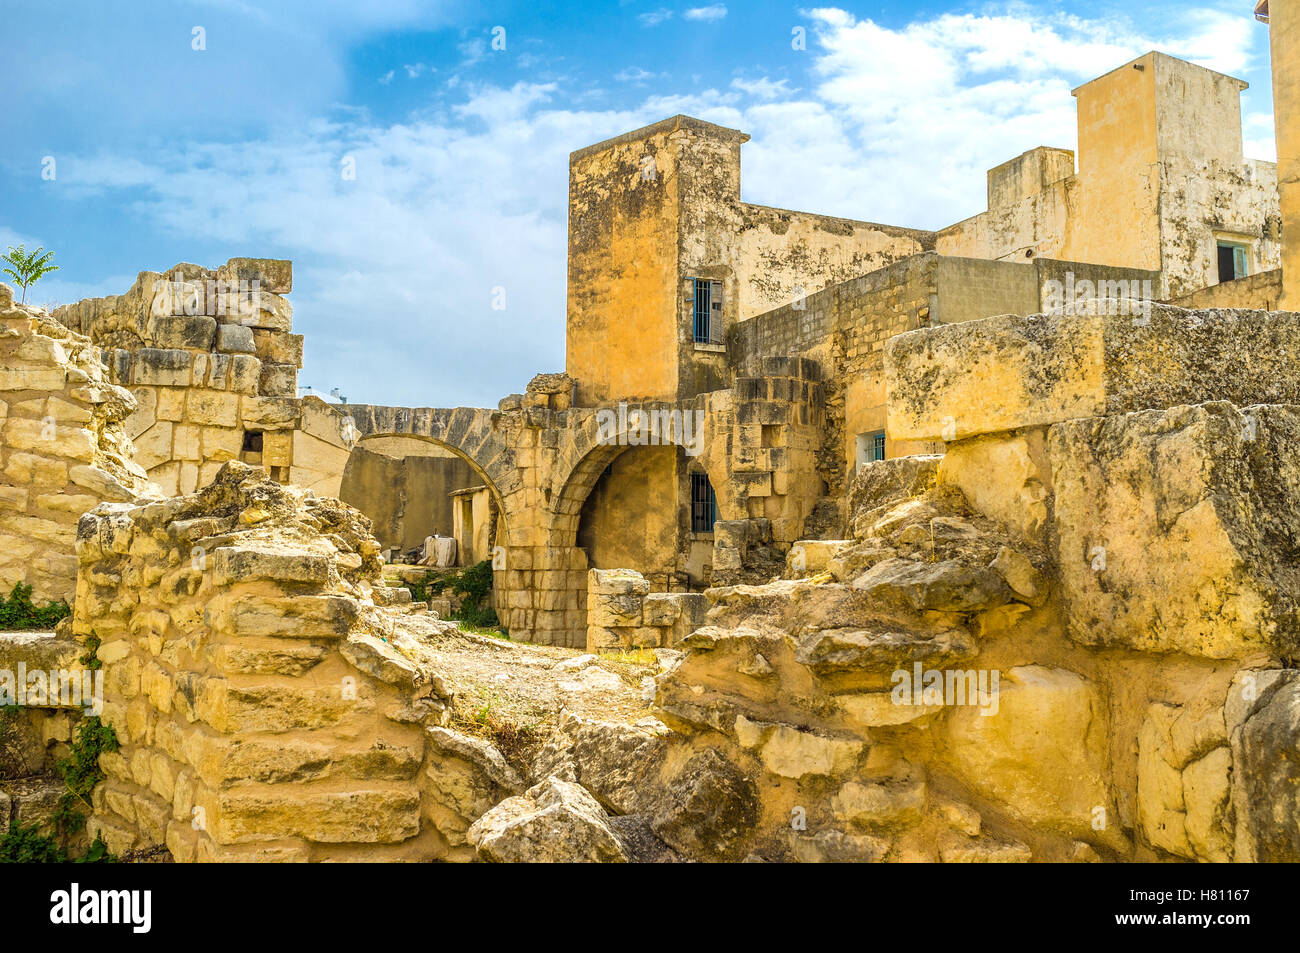 The ruins of the ancent  Roman baths among the residential neighborhoods of old El Kef, Tunisia. - Stock Image